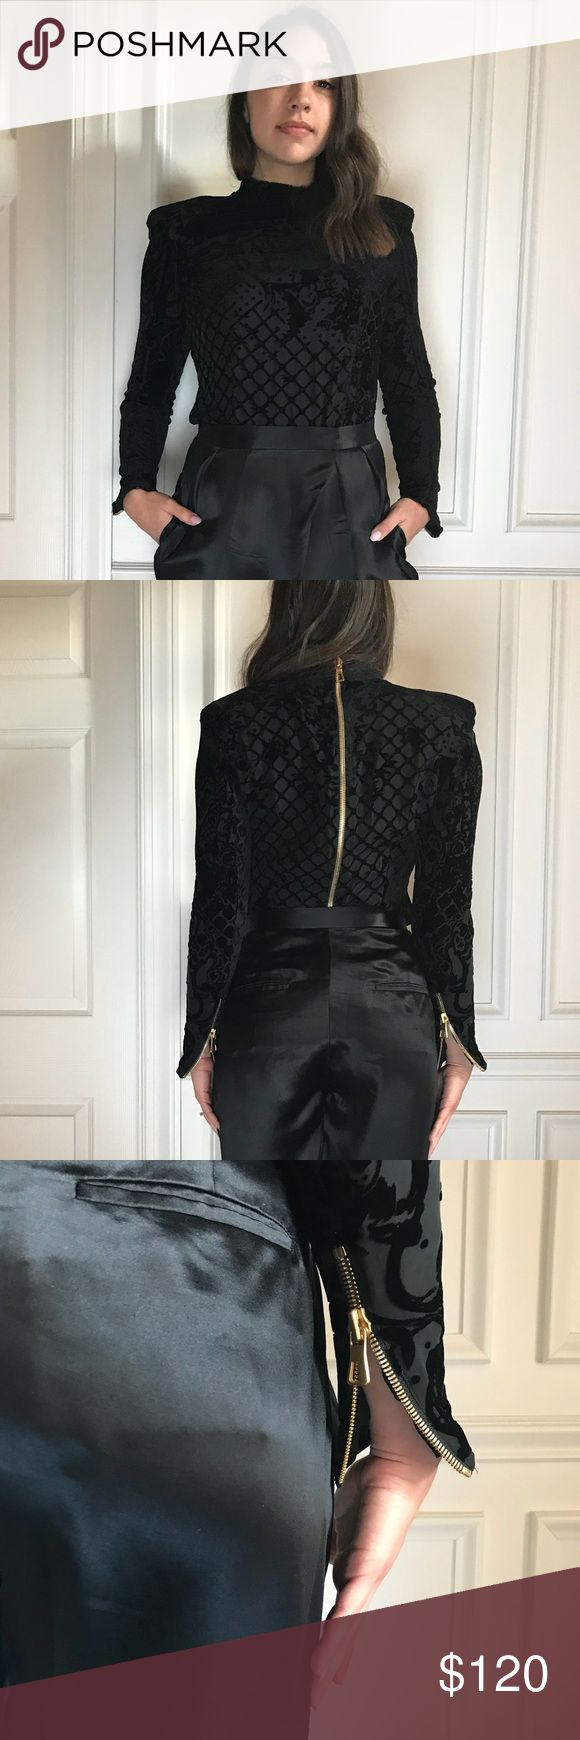 BALMAIN X H&M BURNED BLACK VELVET TURTLENECK Goooooorgeous. Says a 10 but it fits like a 6! Hm sizes are weird! Has BEAUTIFUL gold details. Feels and looks so expensive. I would keep but it doesn't look good on me😕 Balmain Sweaters Cowl & Turtlenecks